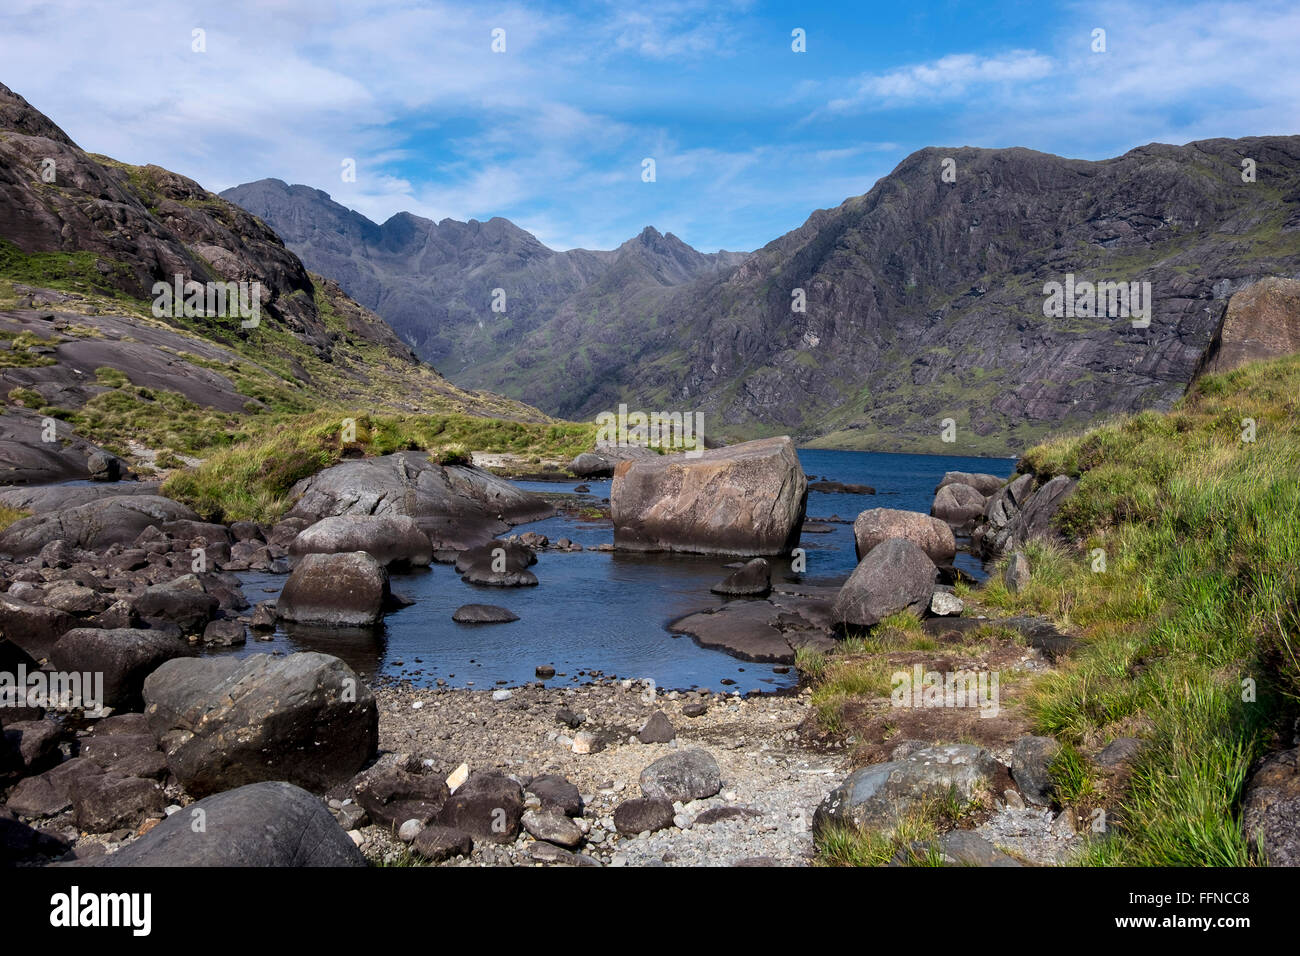 loch coruisk and mountain in cuillins with reflections & jagged skyline - Stock Image